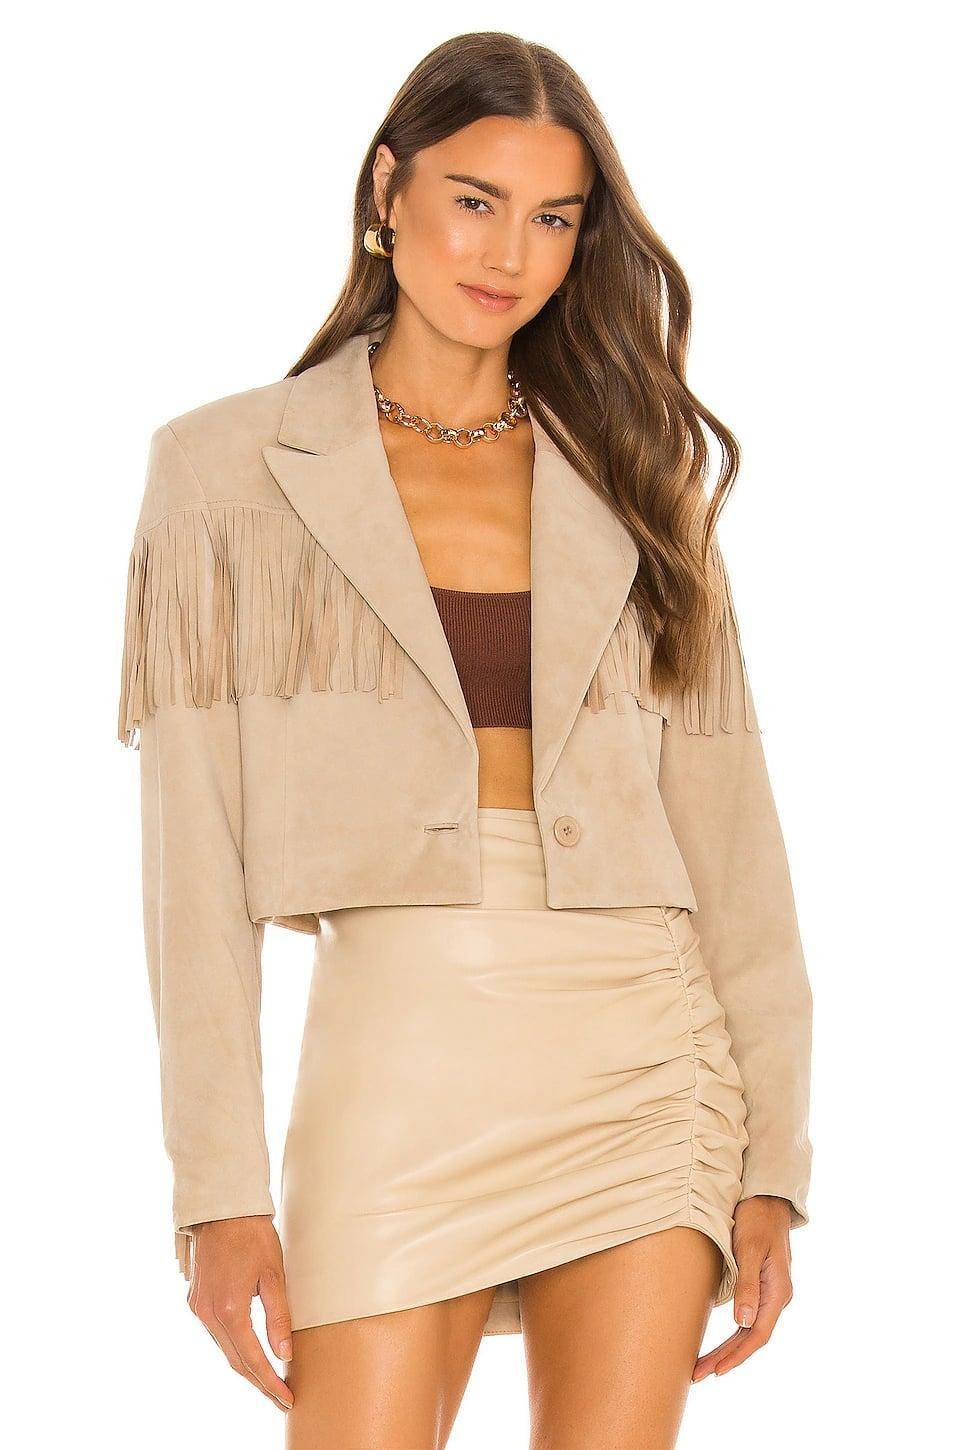 <p>This <span>Lamarque x Revolve Elwyn Suede Fringe Jacket</span> ($395) is a fun take on a fringe jacket. We like the cropped silhouette and exaggerated shoulder pads.</p>